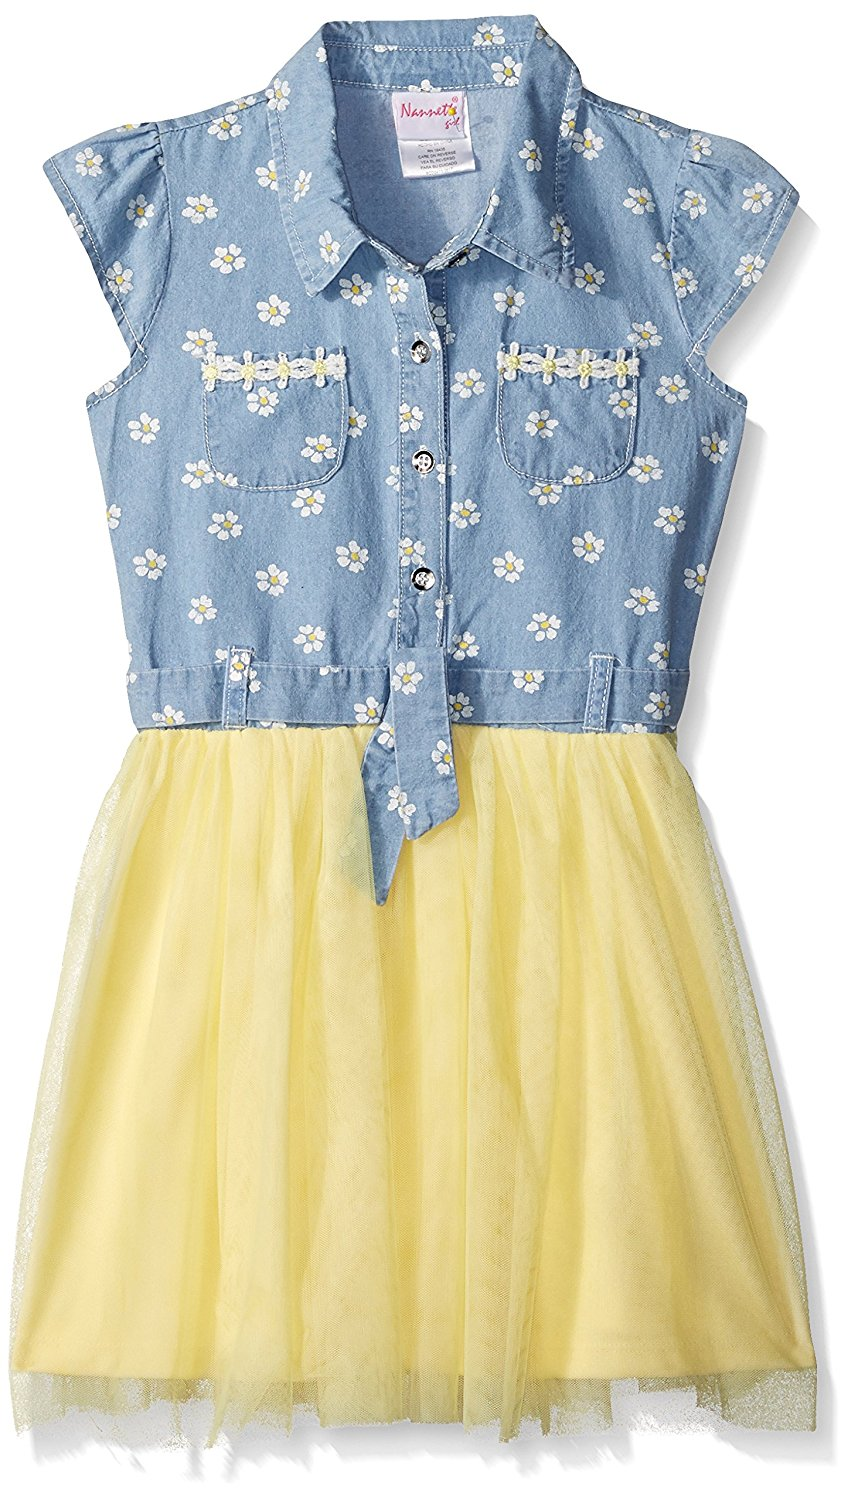 Nannette Girls' Printed Denim Dress Wit Daisy Trim Tulle Skirt